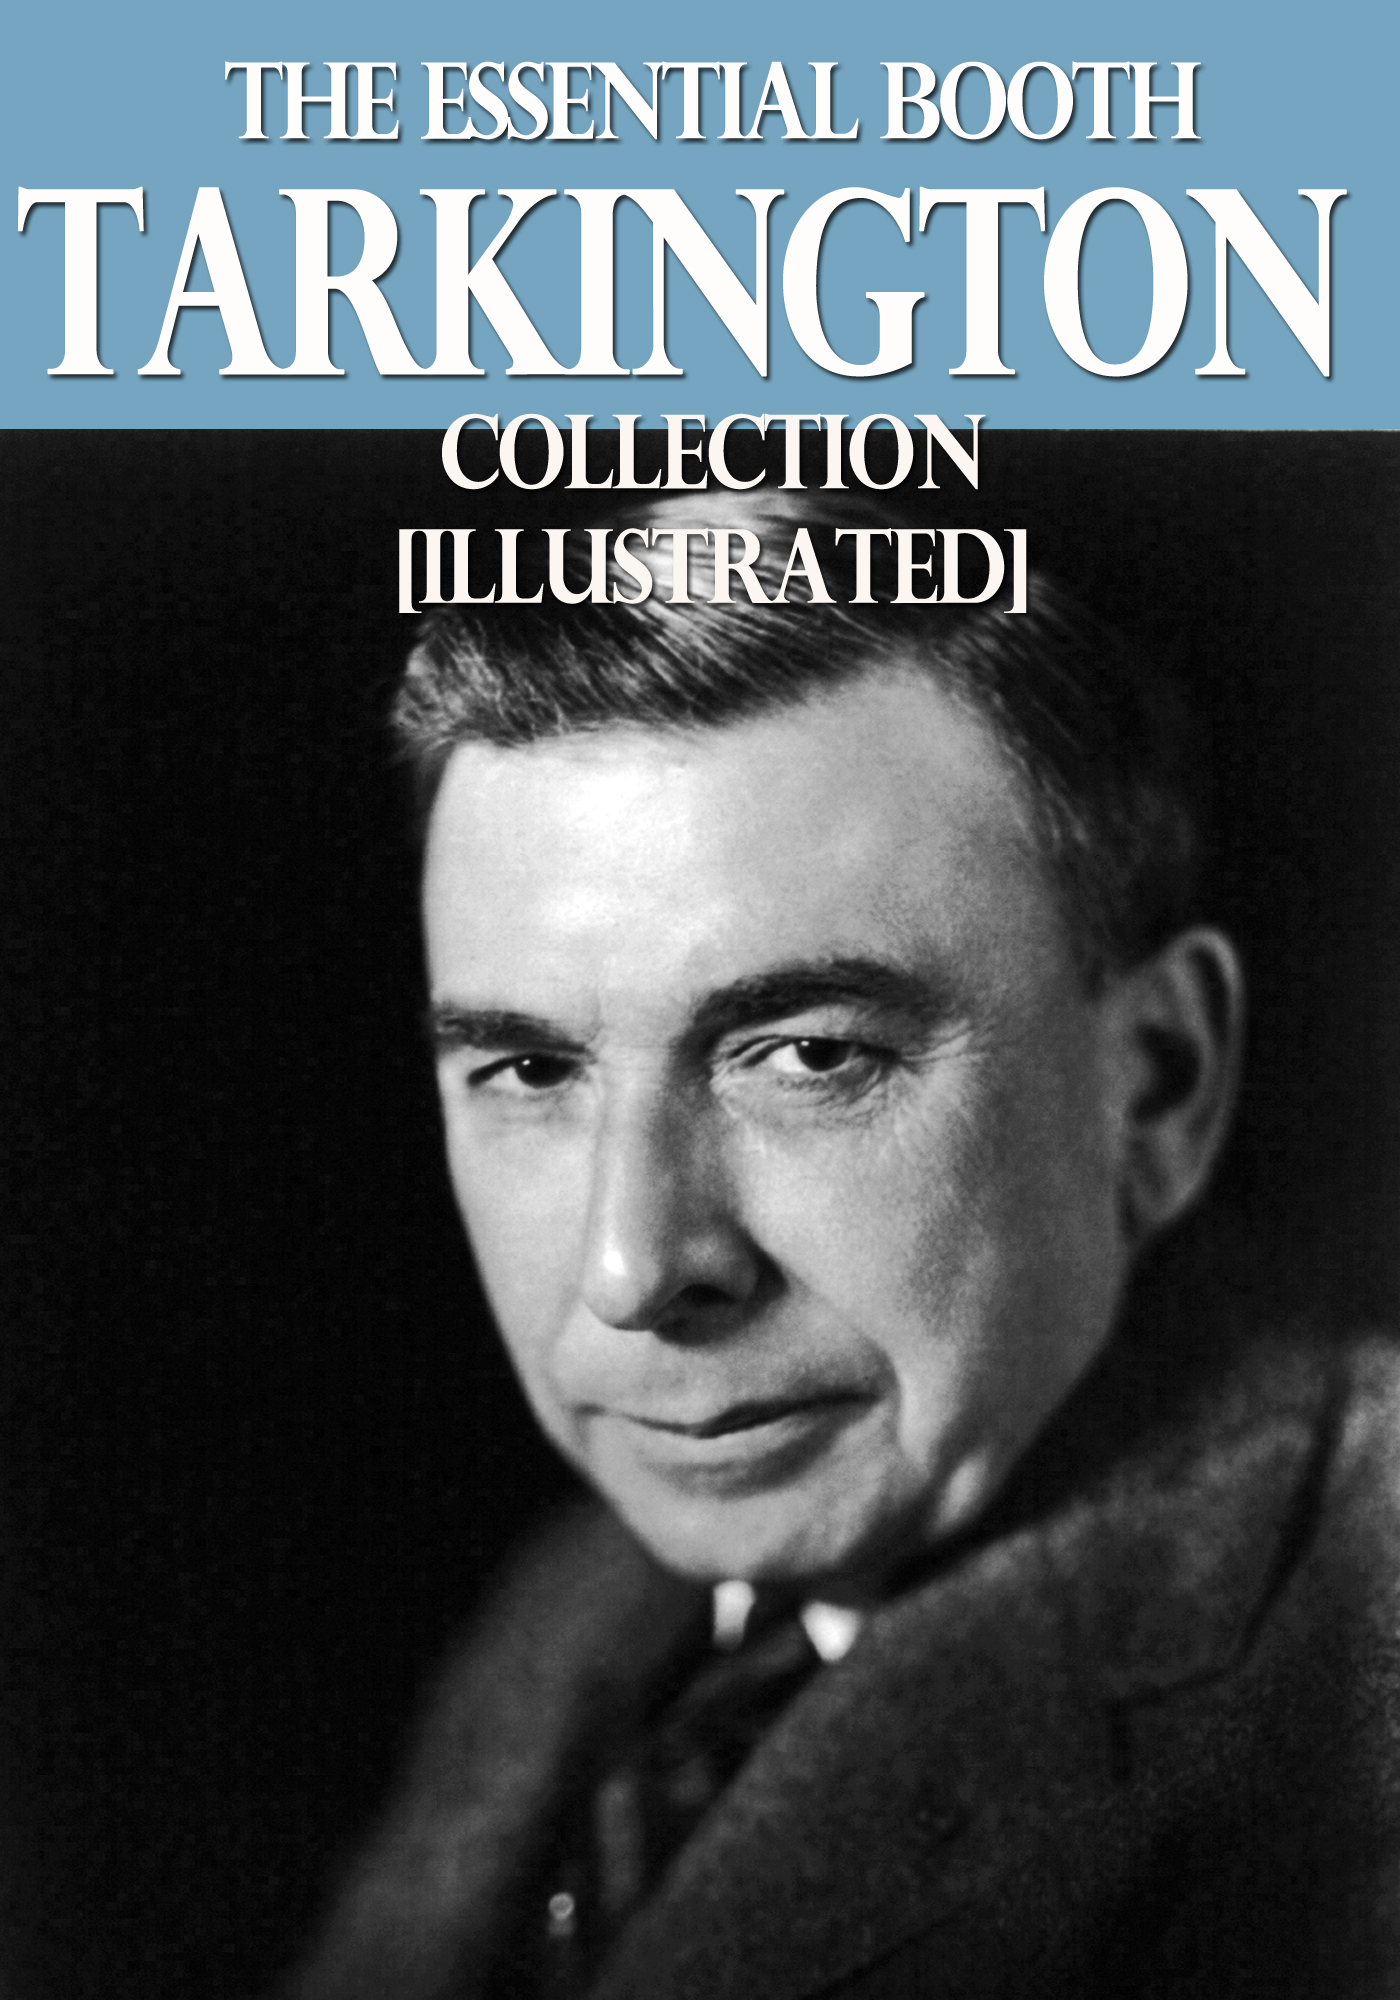 The Essential Booth Tarkington Collection By: Booth Tarkington